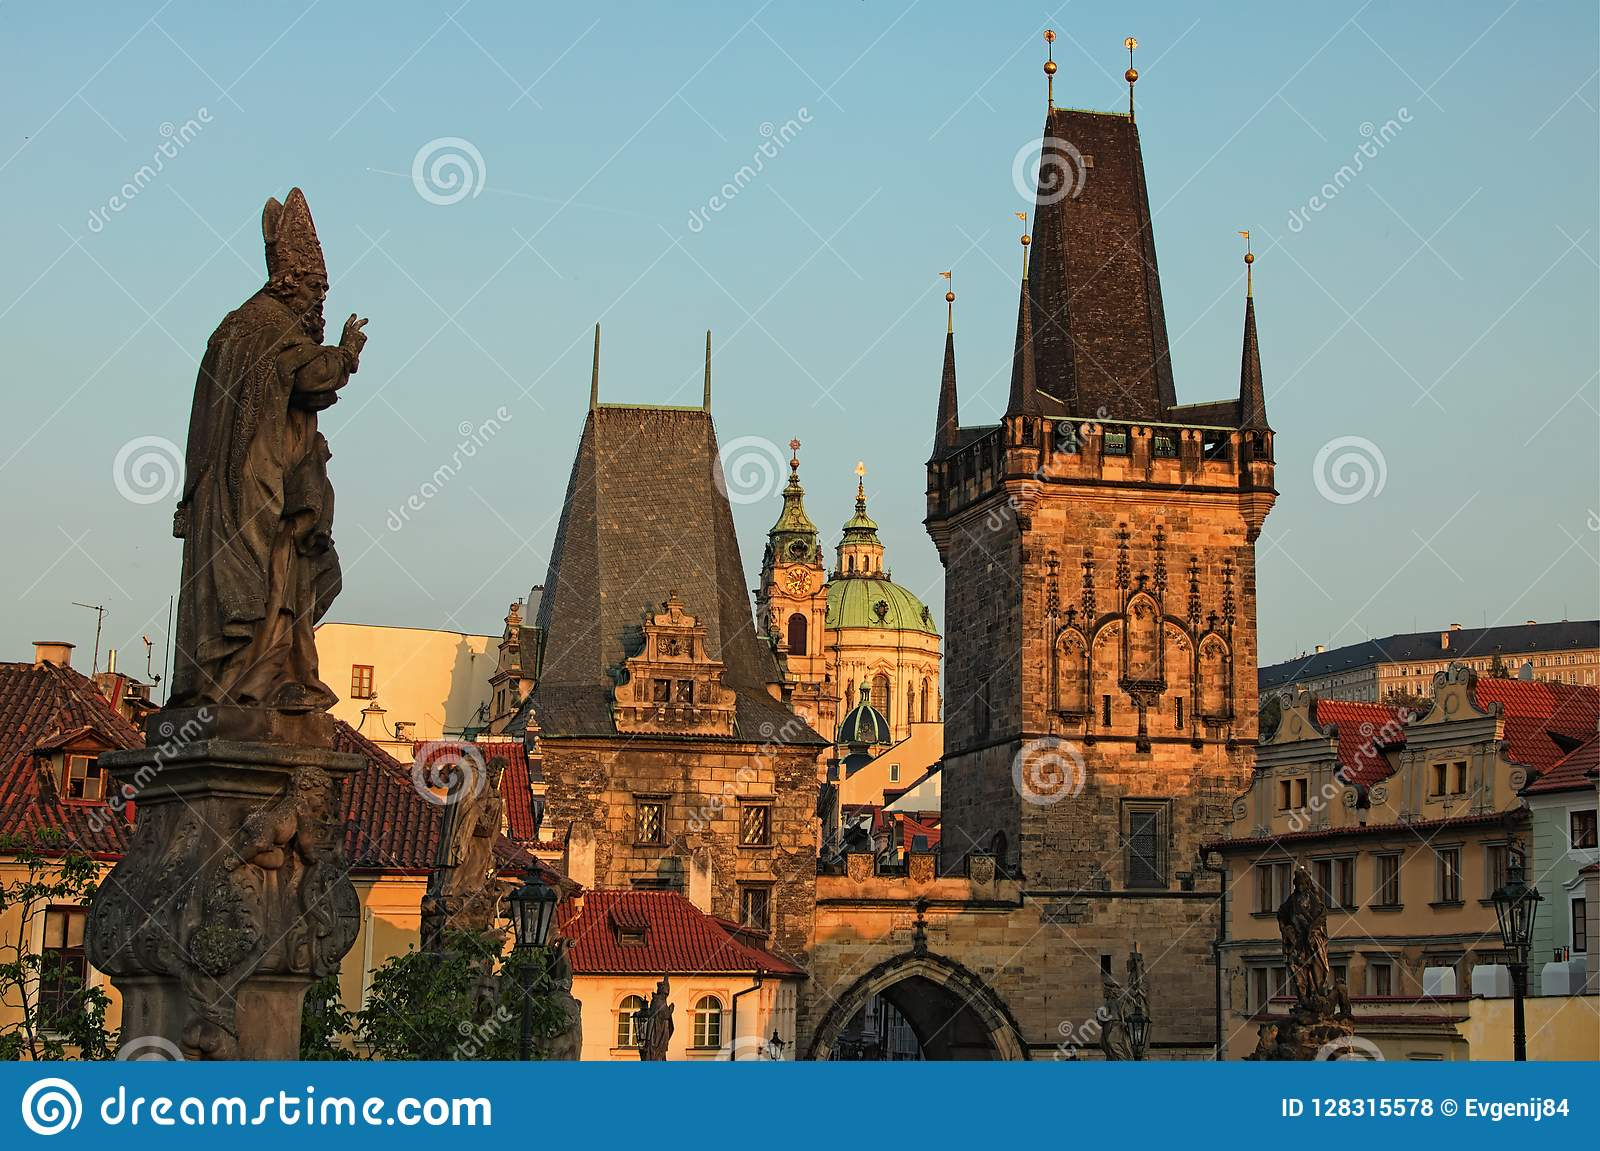 Stunning cityscape of Charles Bridge during sunrise. Statues on Charles Bridge, lanterns and Old Town Bridge Tower